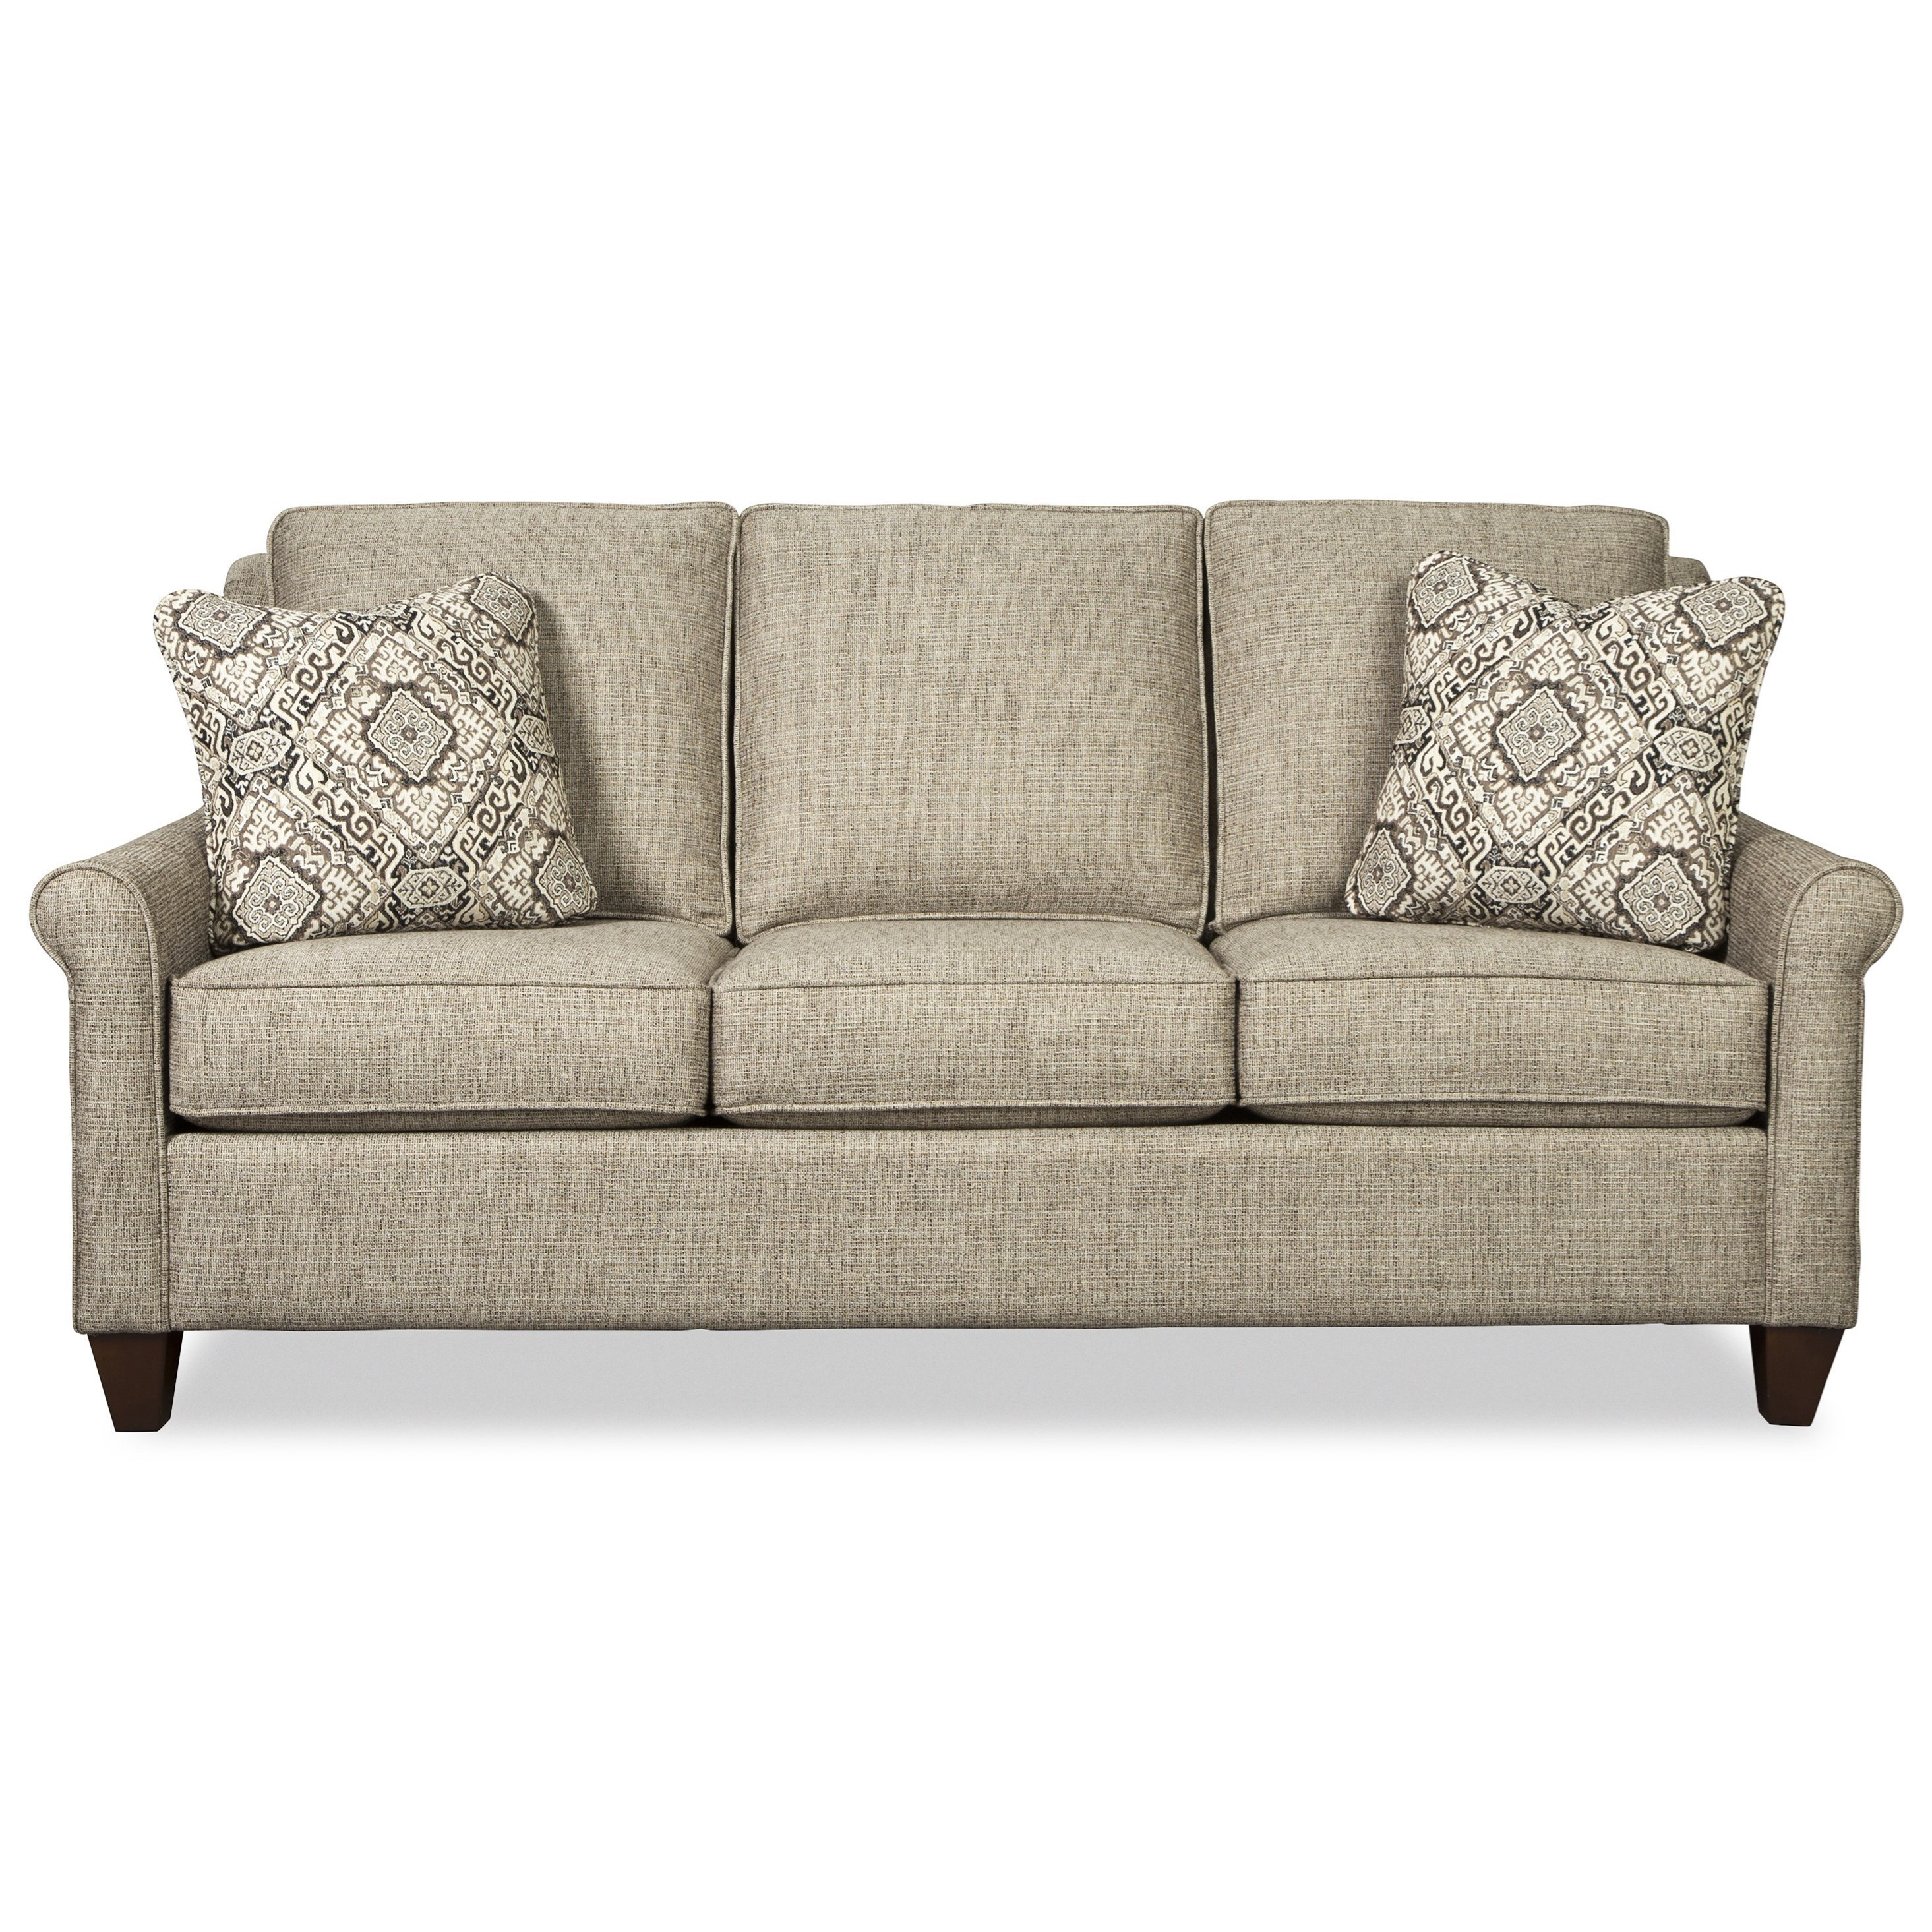 Casual 79 Inch Sofa with Queen Sleeper Mattress